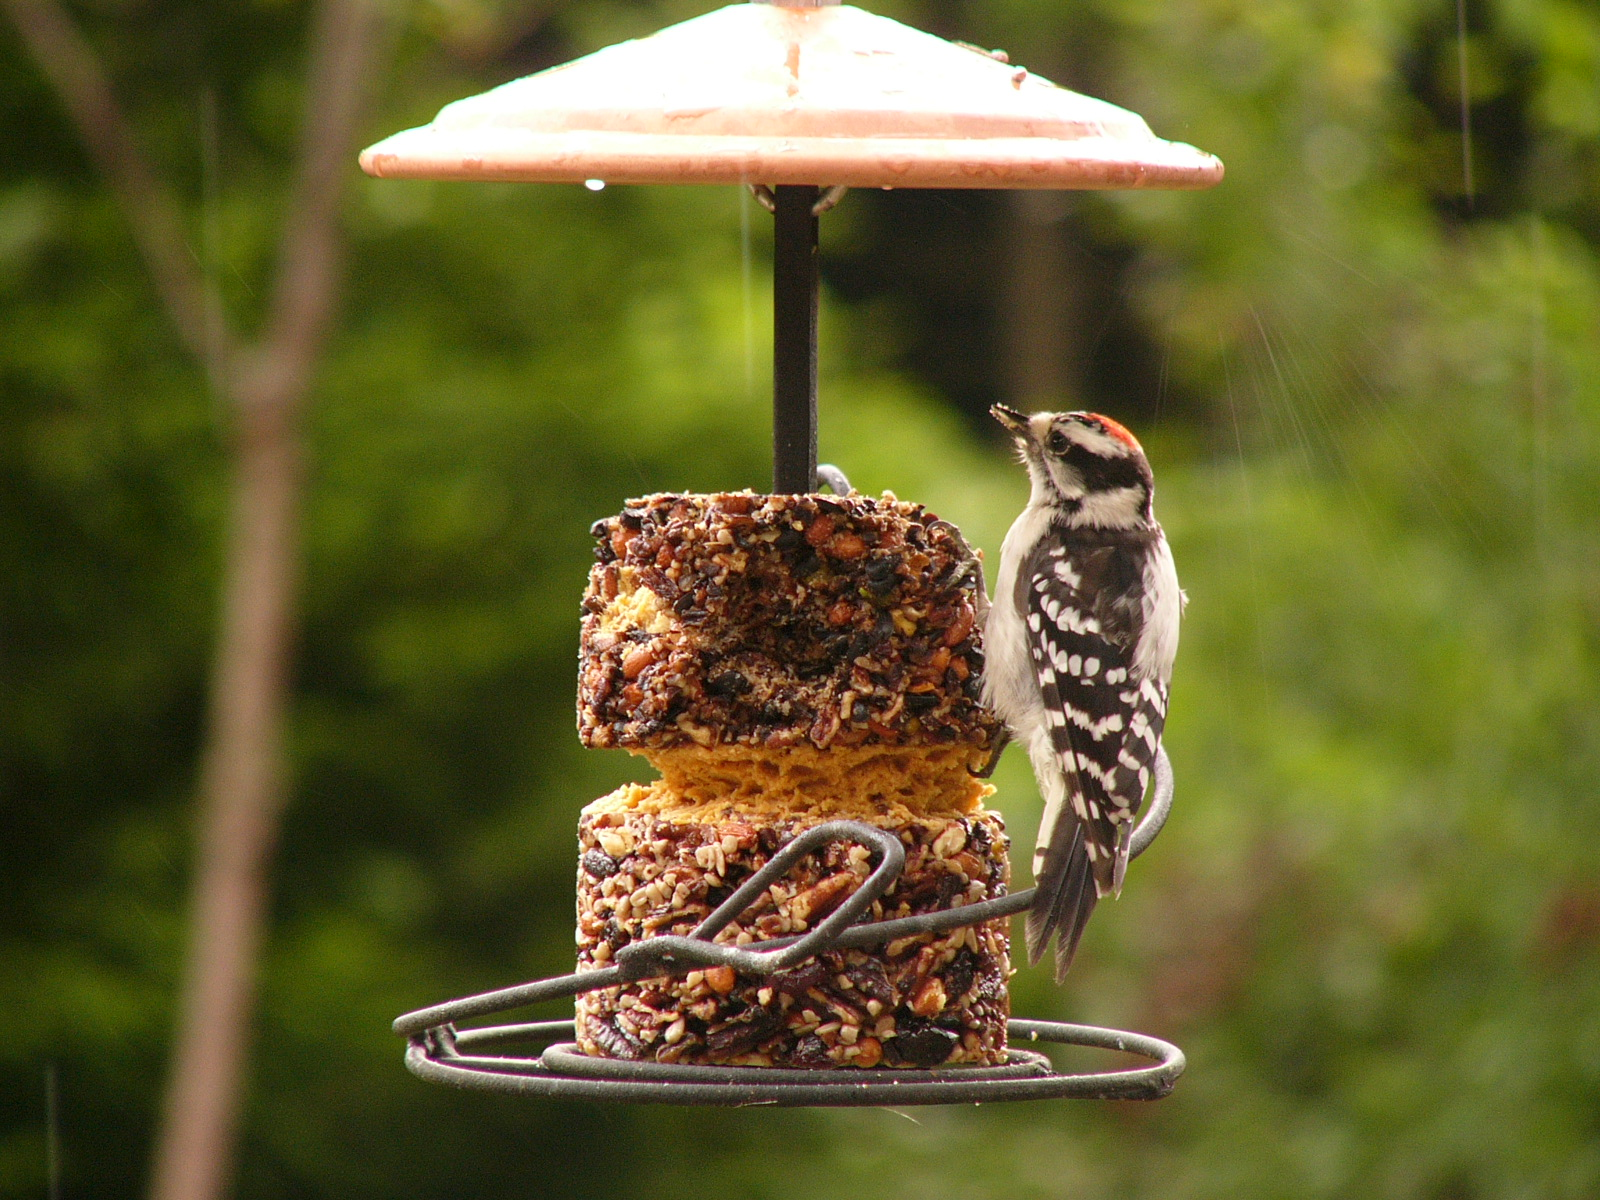 image feeders wild bird large advanced appealing for pole system amazon feeder birds unlimited